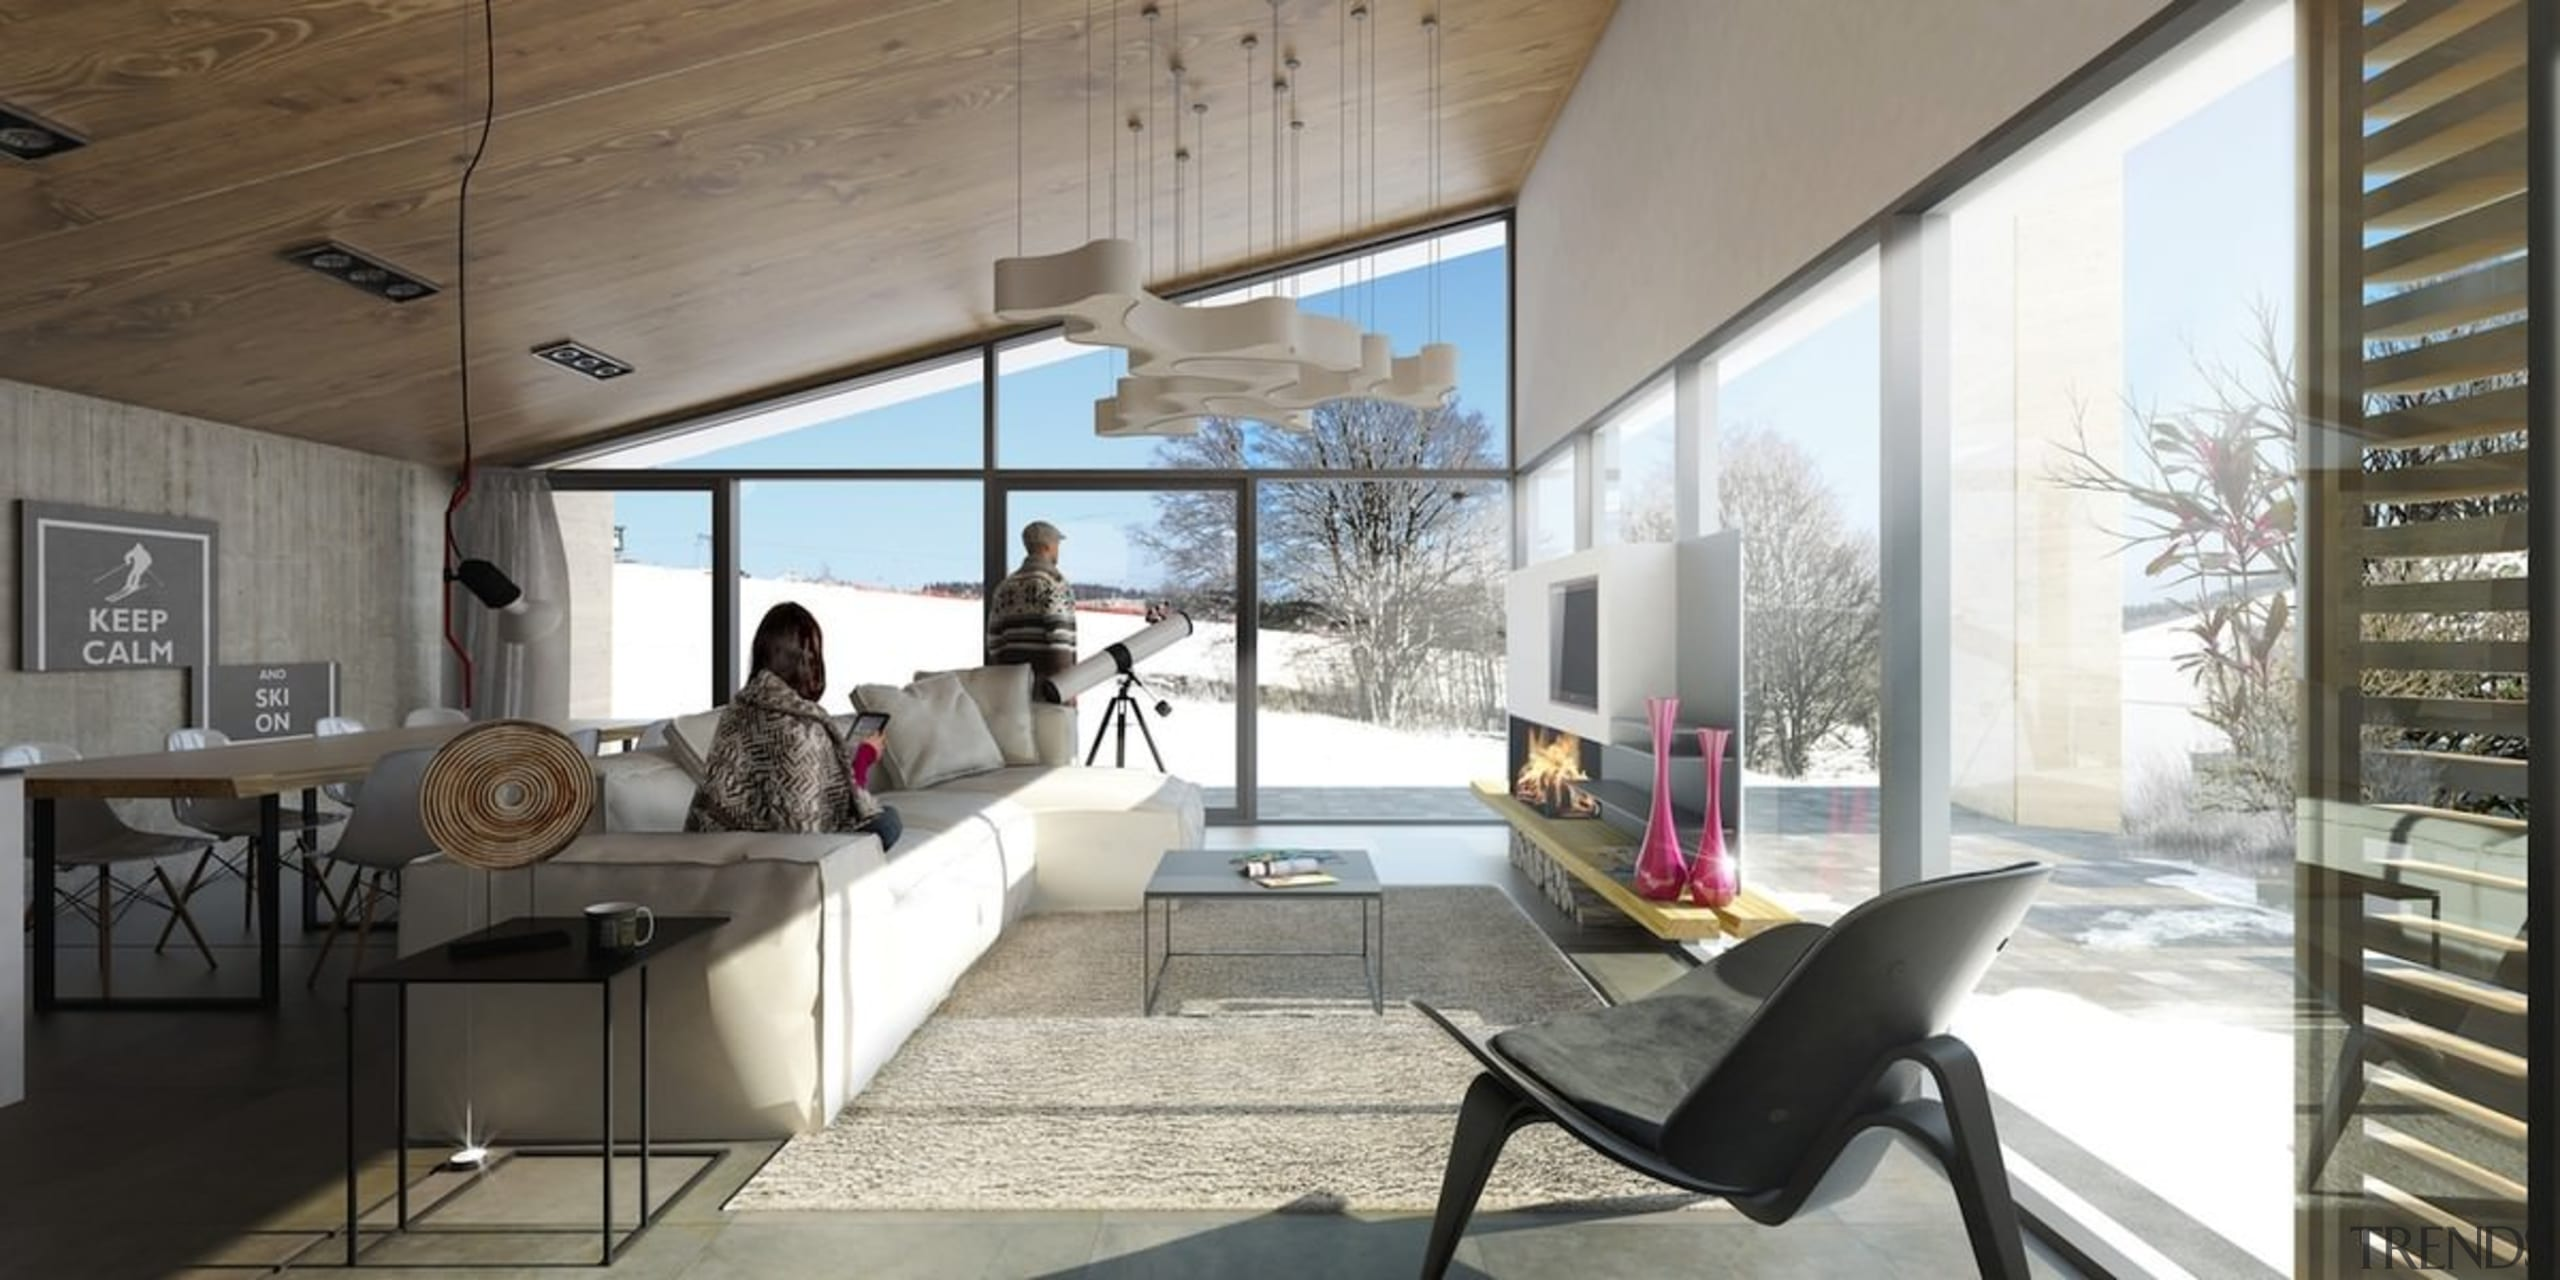 Every effort was made to maximise glass usage architecture, house, interior design, loft, real estate, window, white, gray